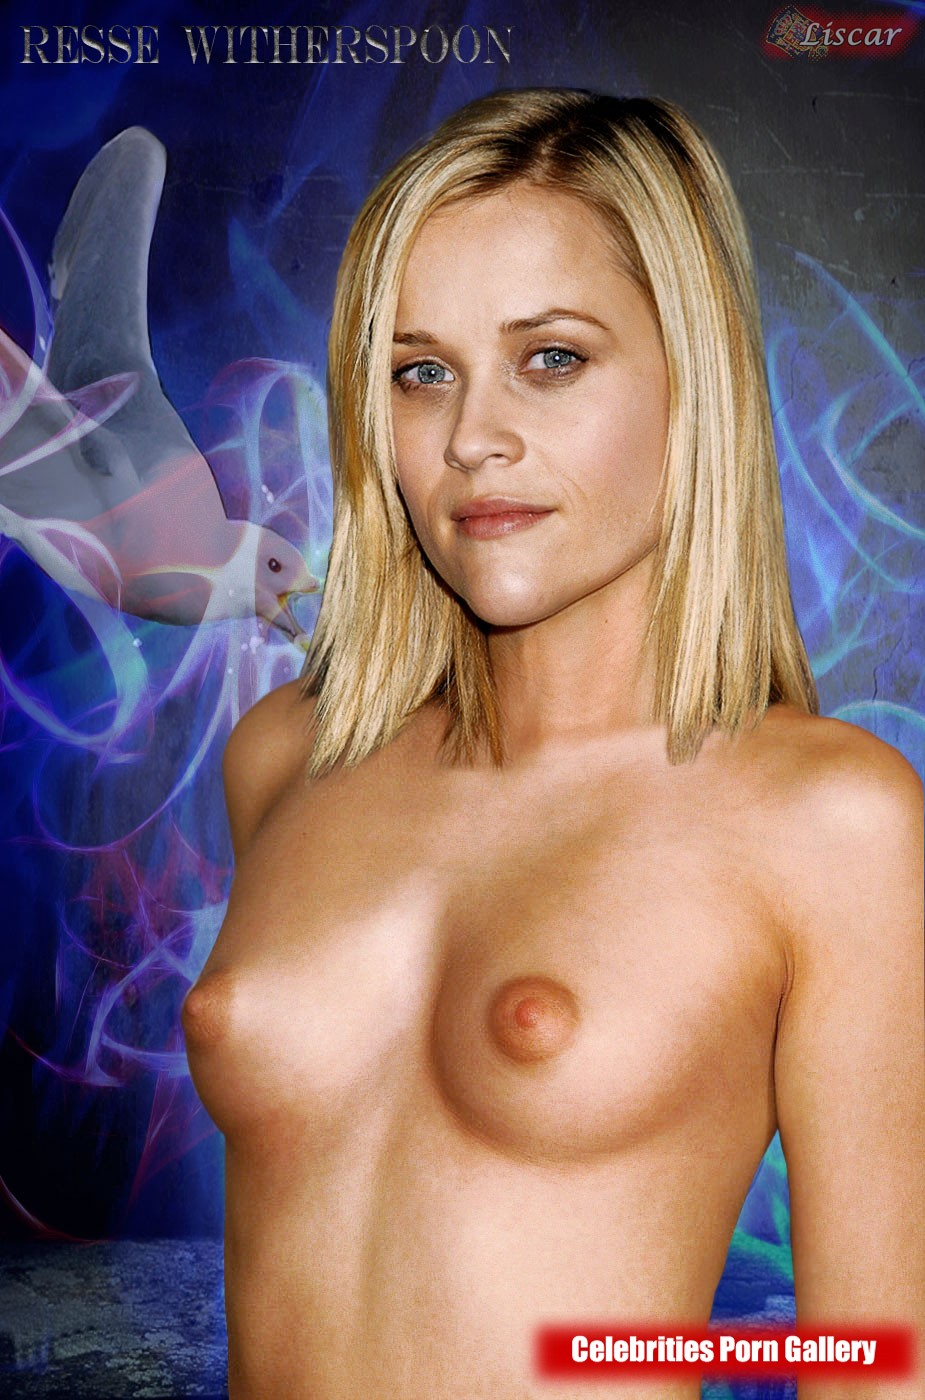 Reese Witherspoon Leak